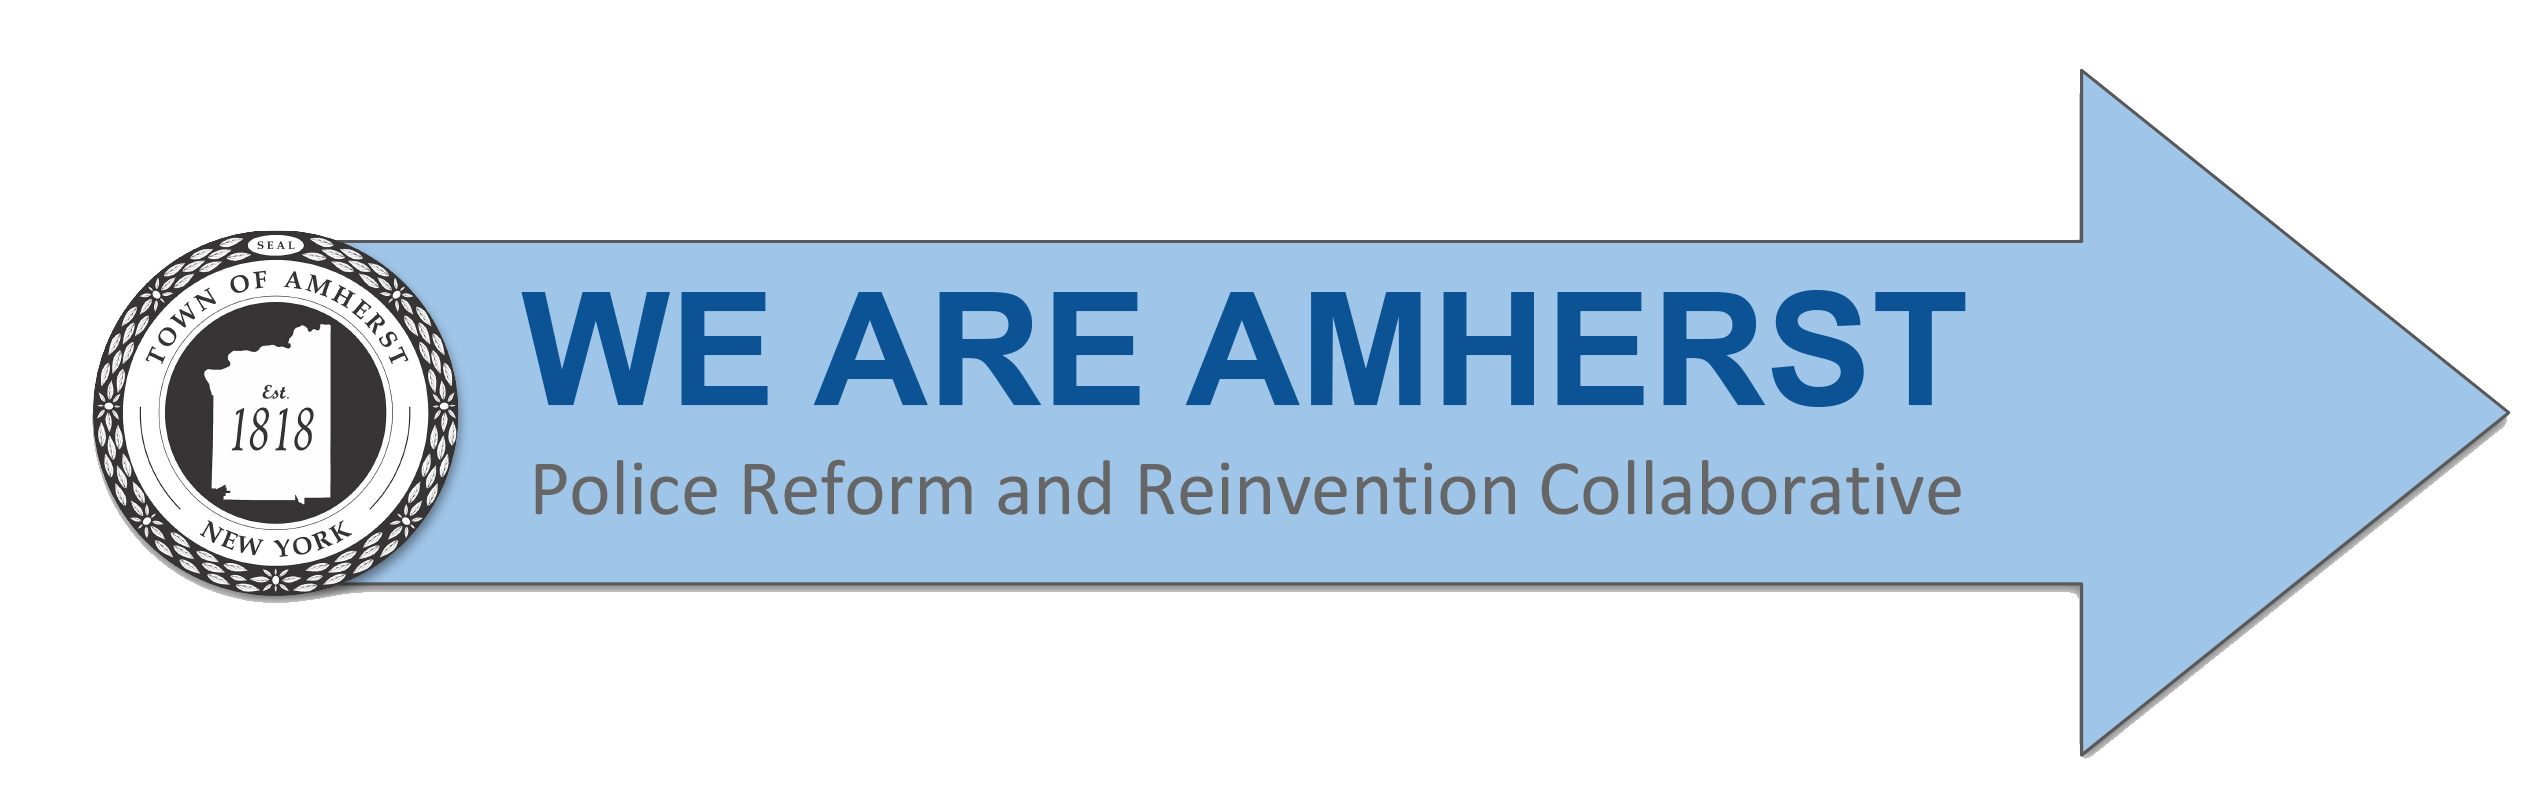 we are amherst - police reform and reinvention collaborative